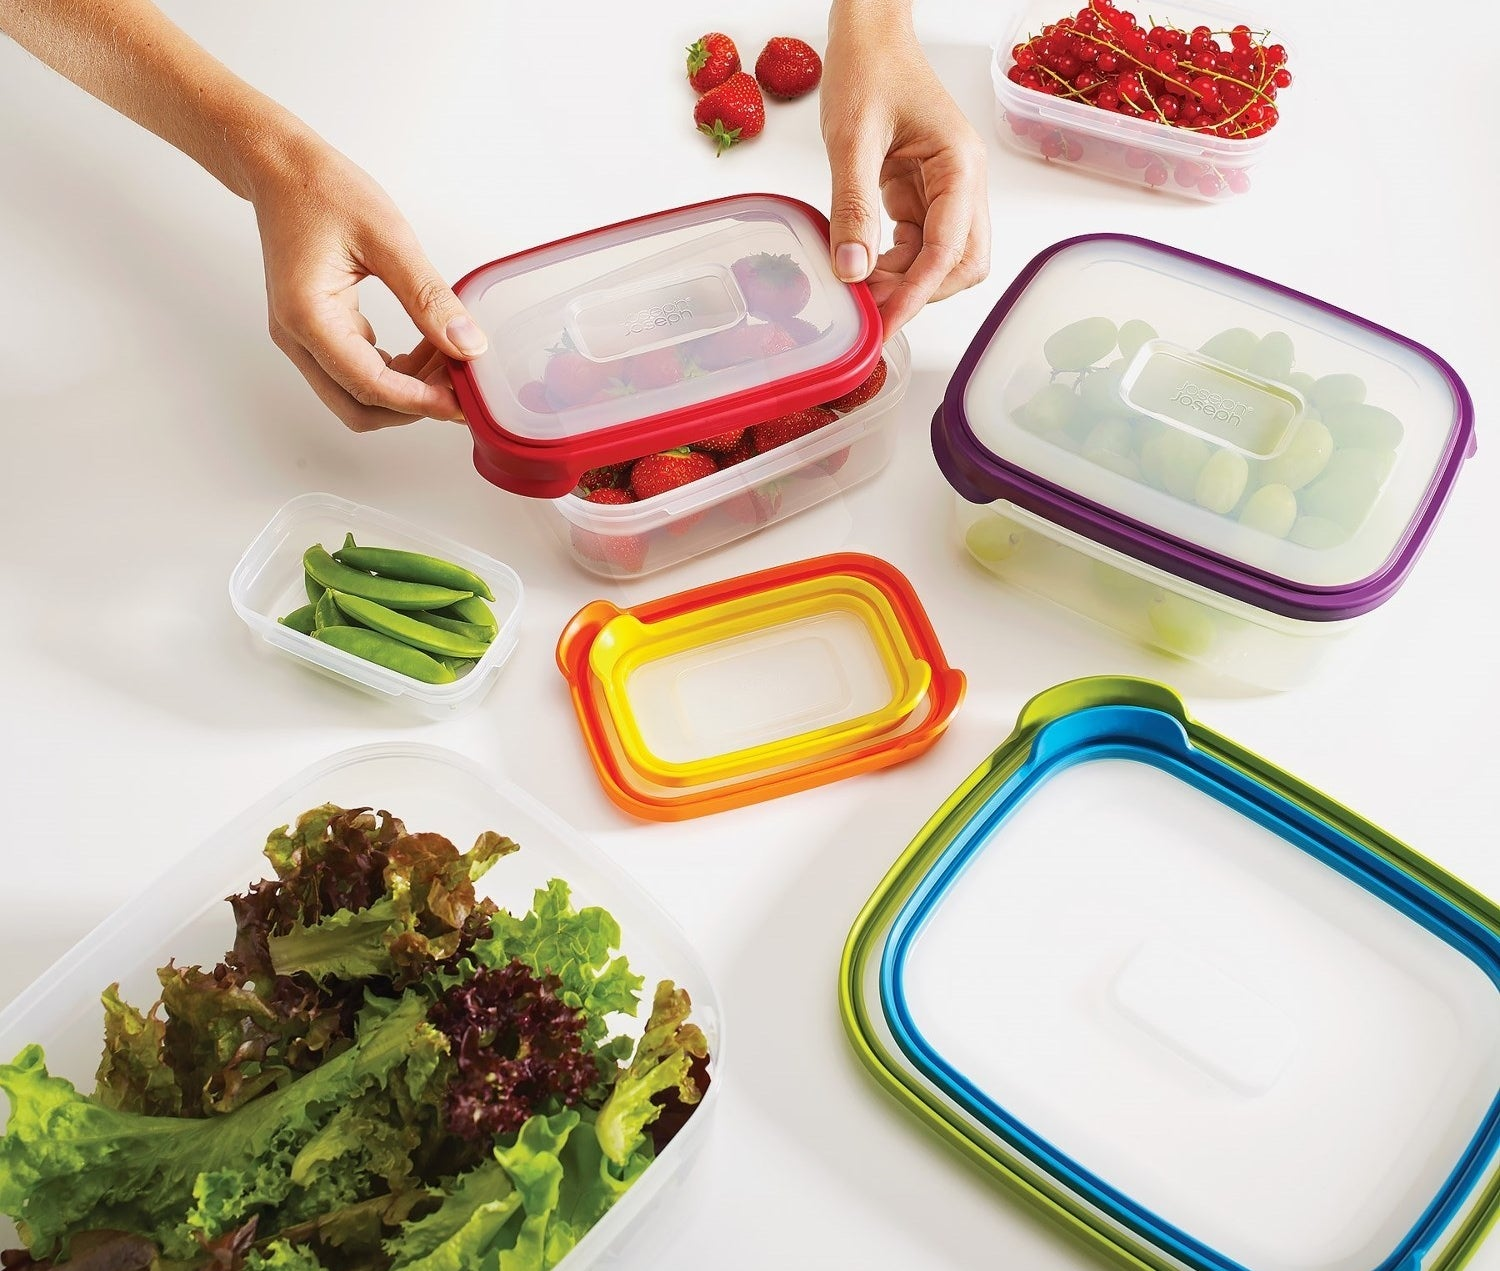 """All the containers can be nested inside one another or on top of each other for space-saving purposes. They're top-rack dishwasher safe and BPA free. Promising review: """"Great product. Well-made and durable. I've had these bowls for six months now, and they are battle tested after numerous cycles in the dishwasher. The bowls resist staining from sauce, etc. and the lids hold their shape very well. They look as new today as they did at Christmas."""" —P DaddyGet a 12-piece set (six containers and lids) from Amazon for $27.96."""